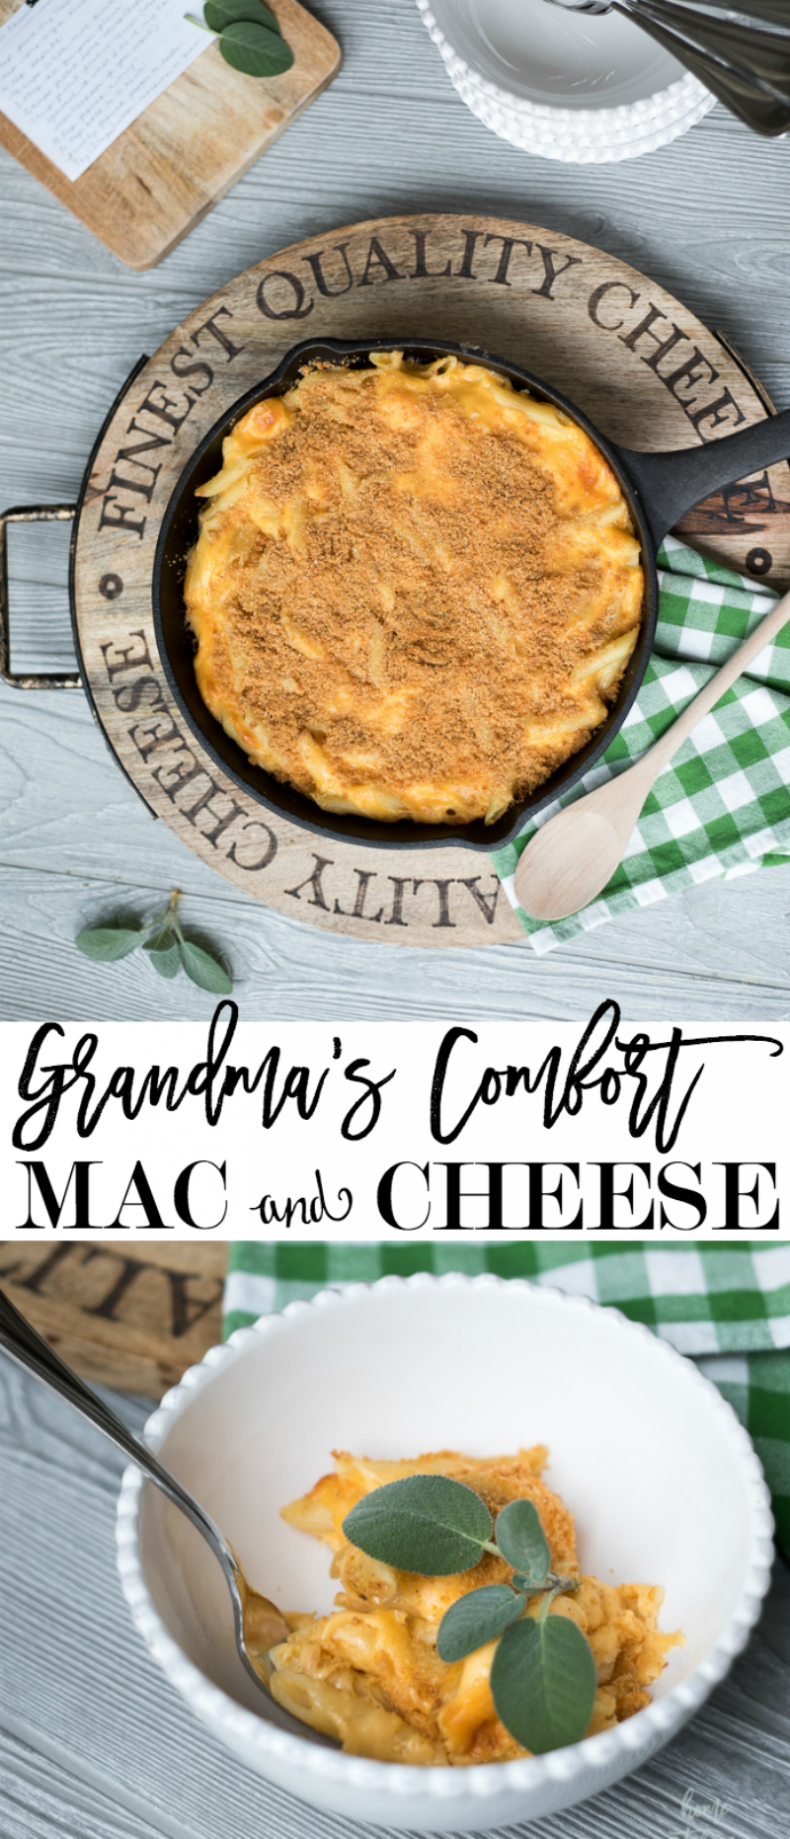 Best Macaroni and Cheese Recipe